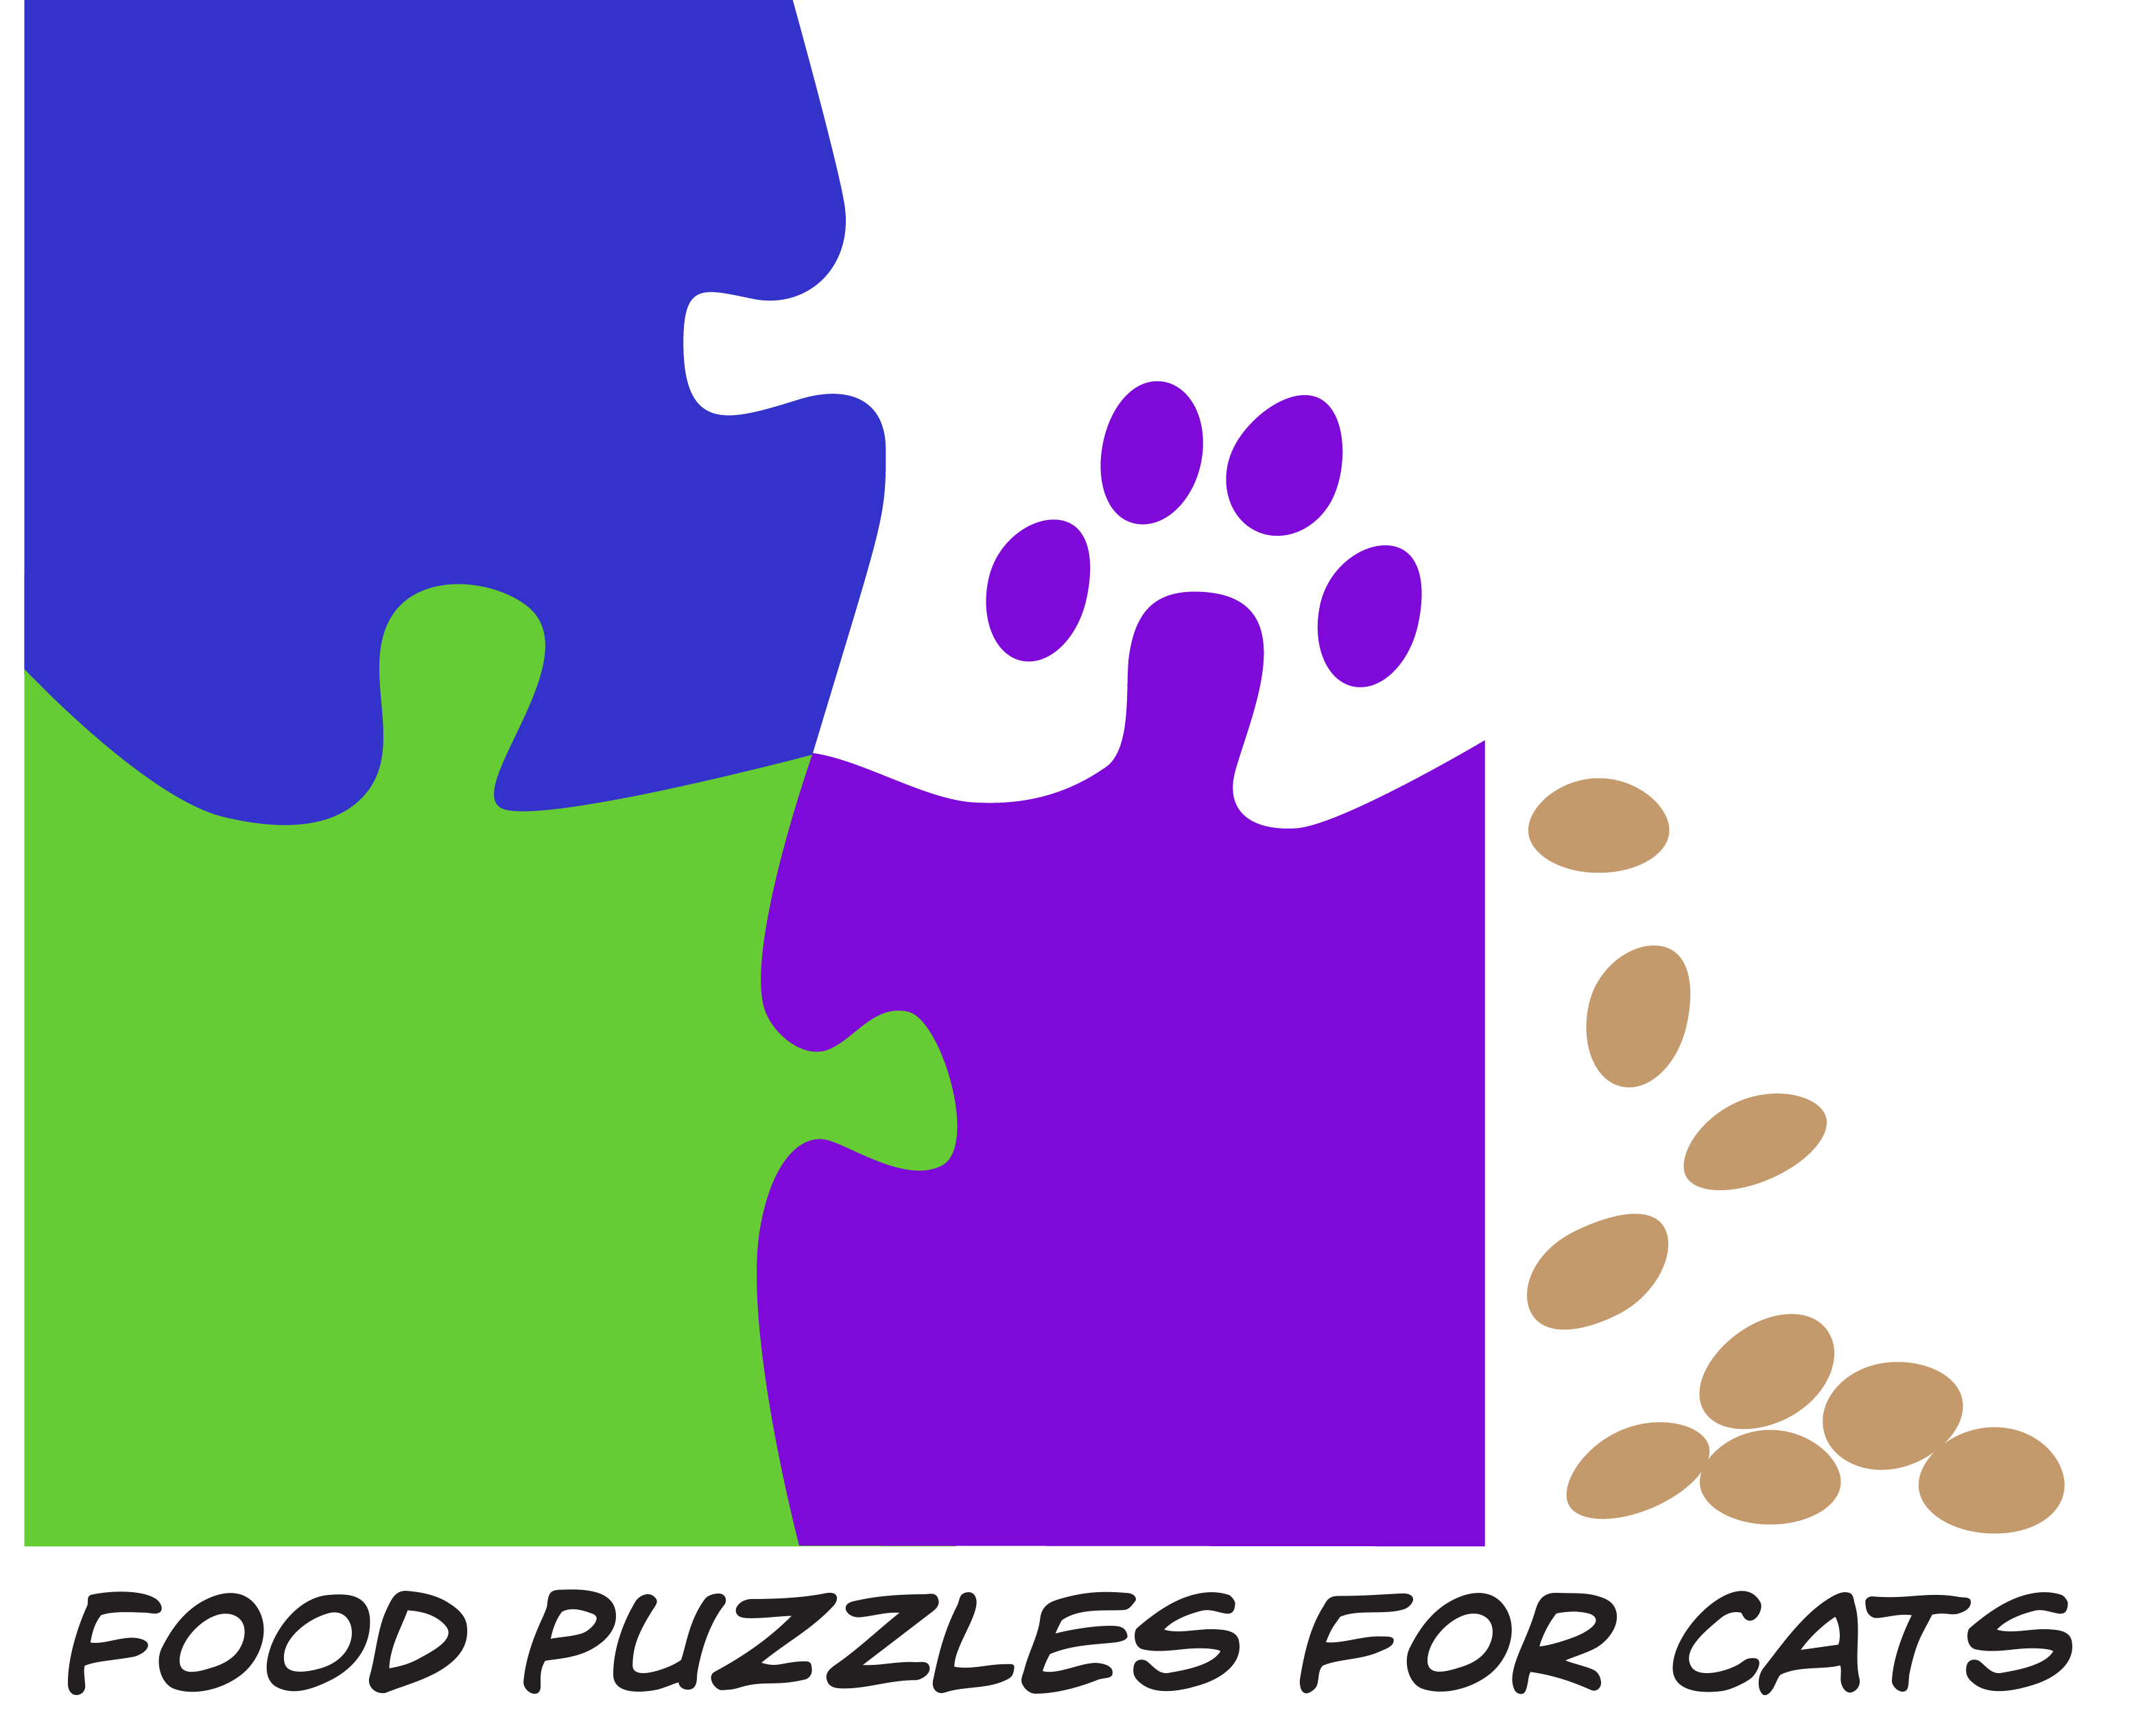 Puzzle clipart proportion. Cats and squirrels other